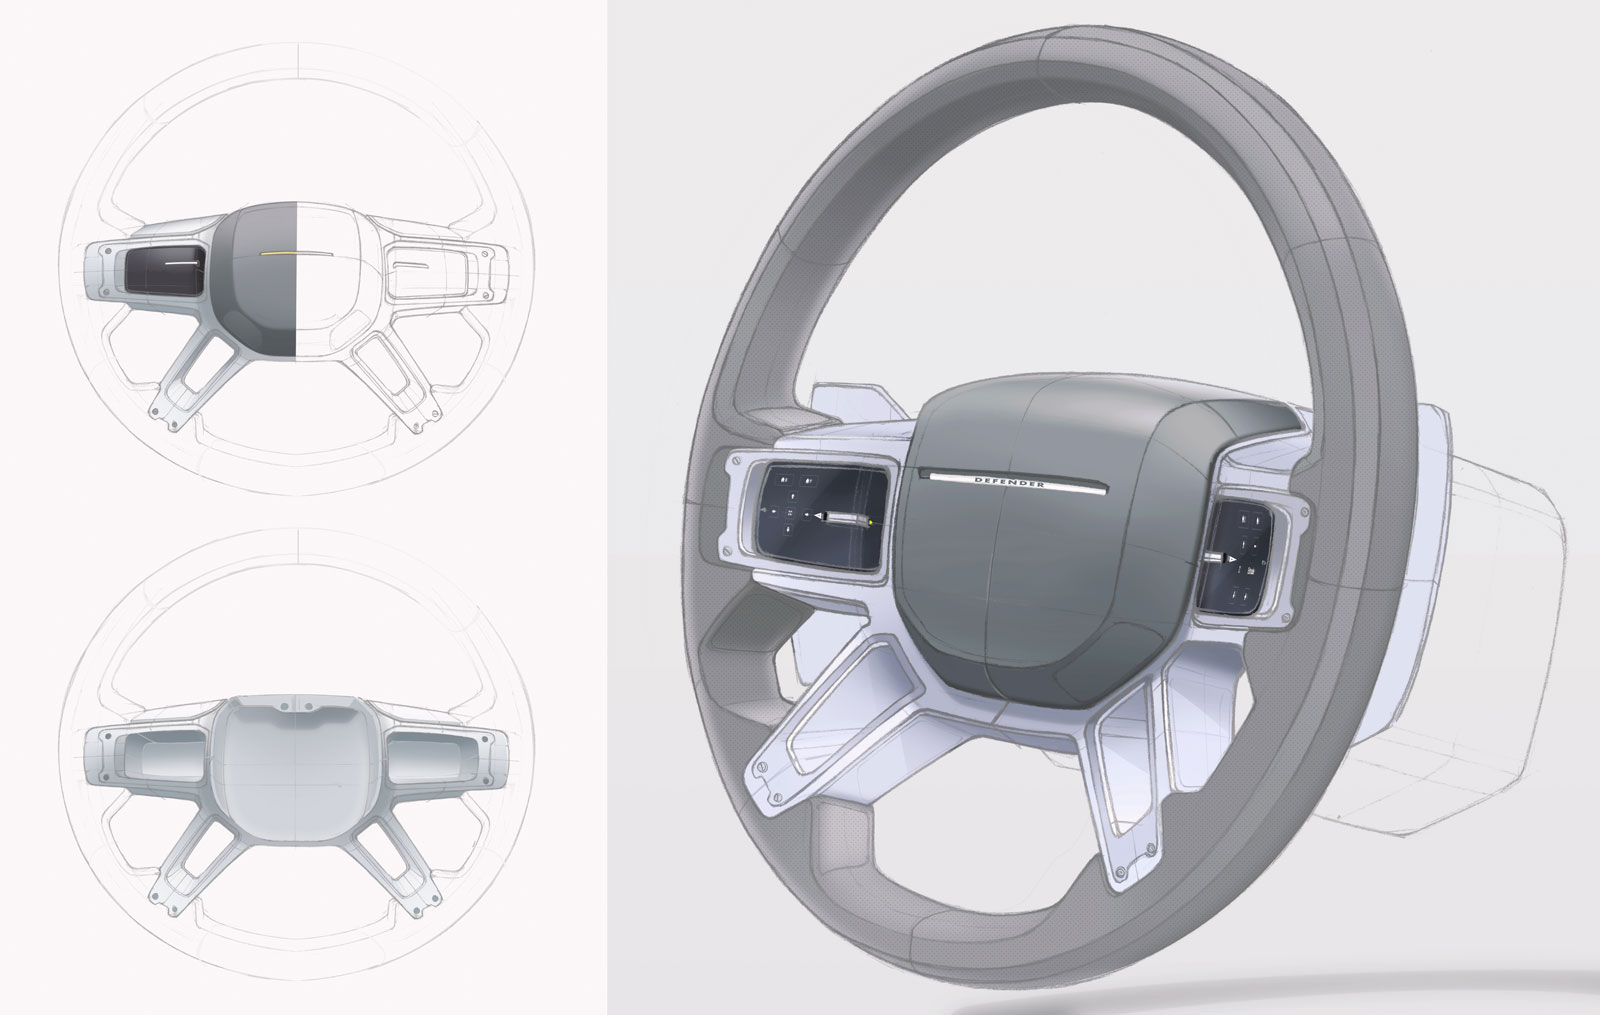 New Land Rover Defender Steering Wheel Design Sketch Render